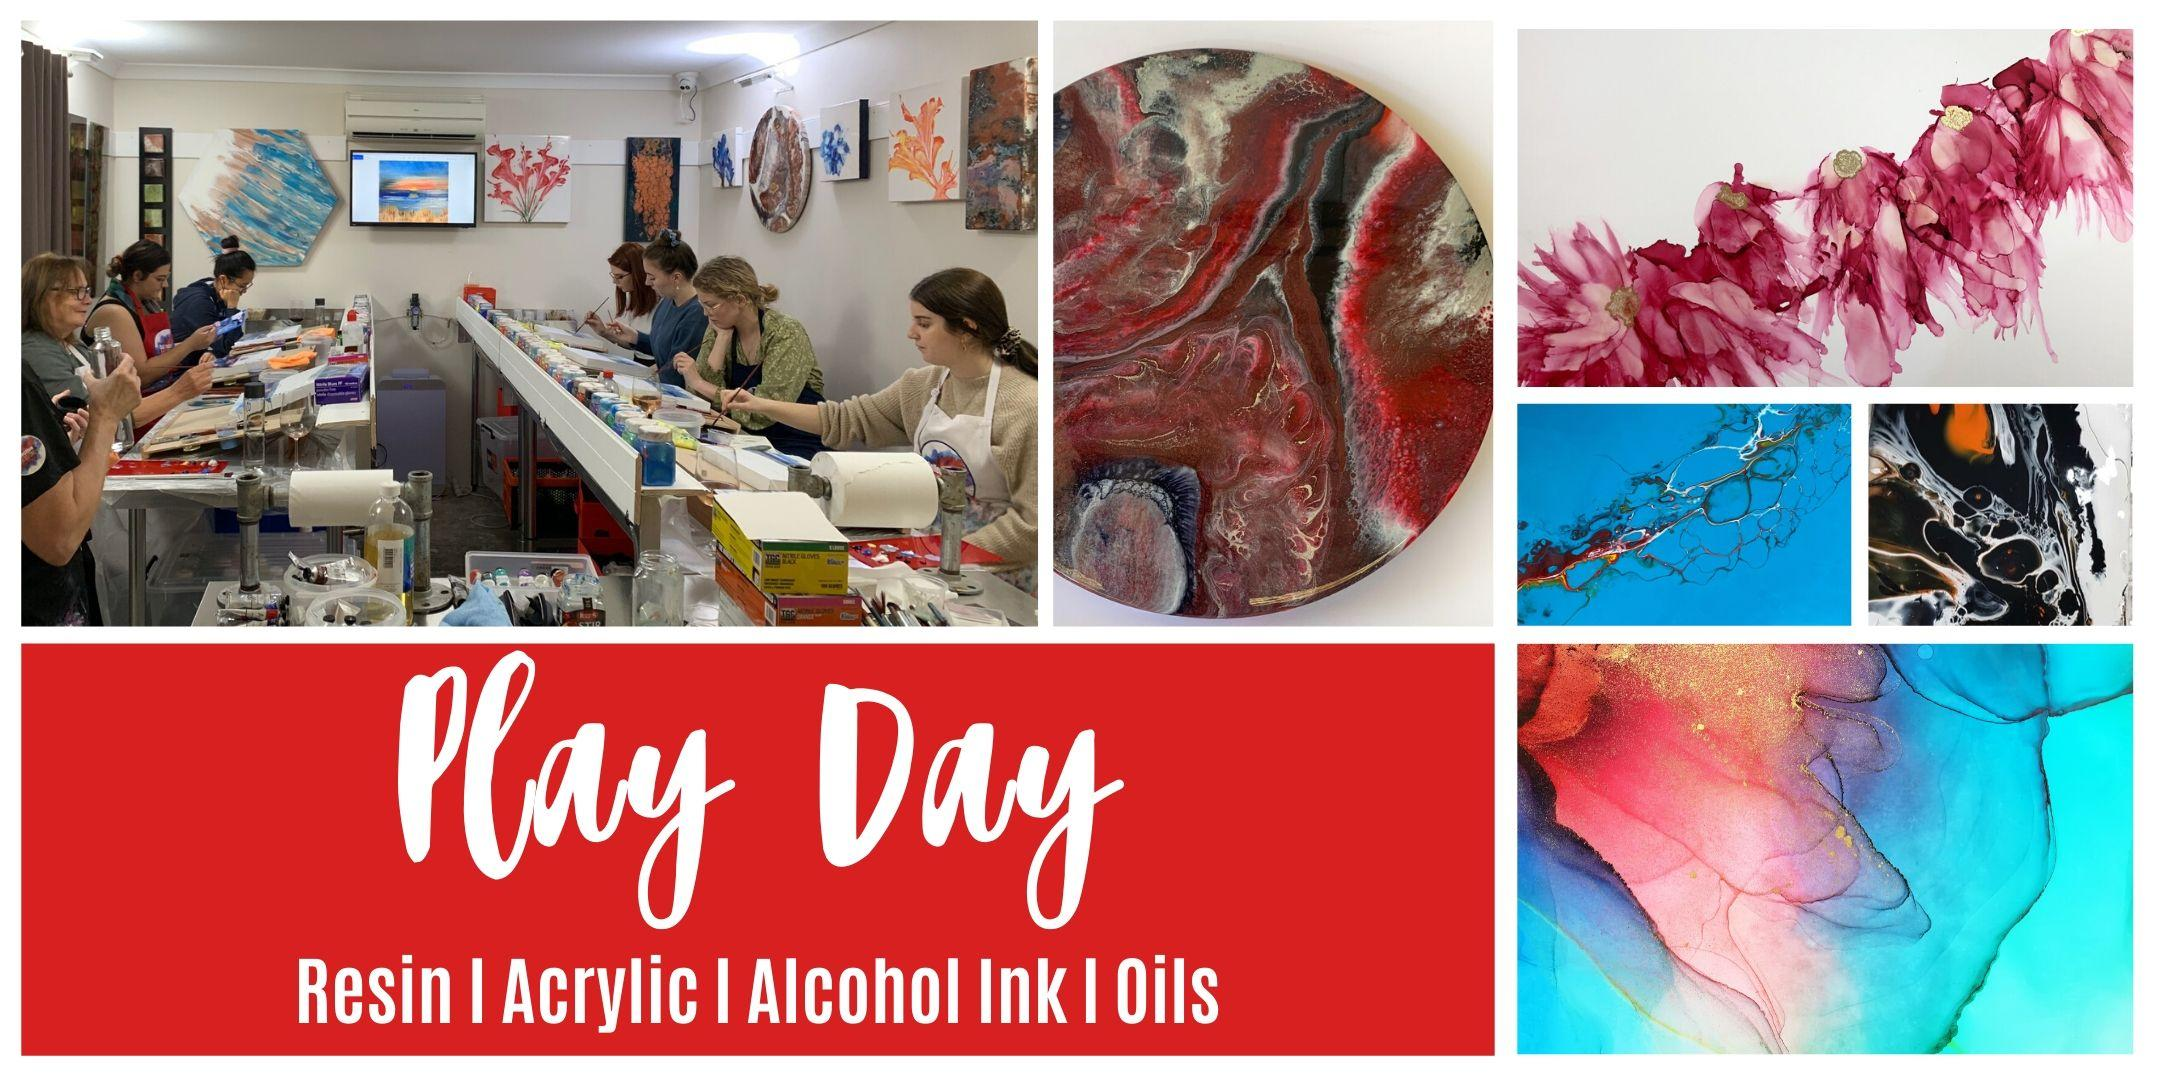 CREATIVE DAY - Creating Art Your Way